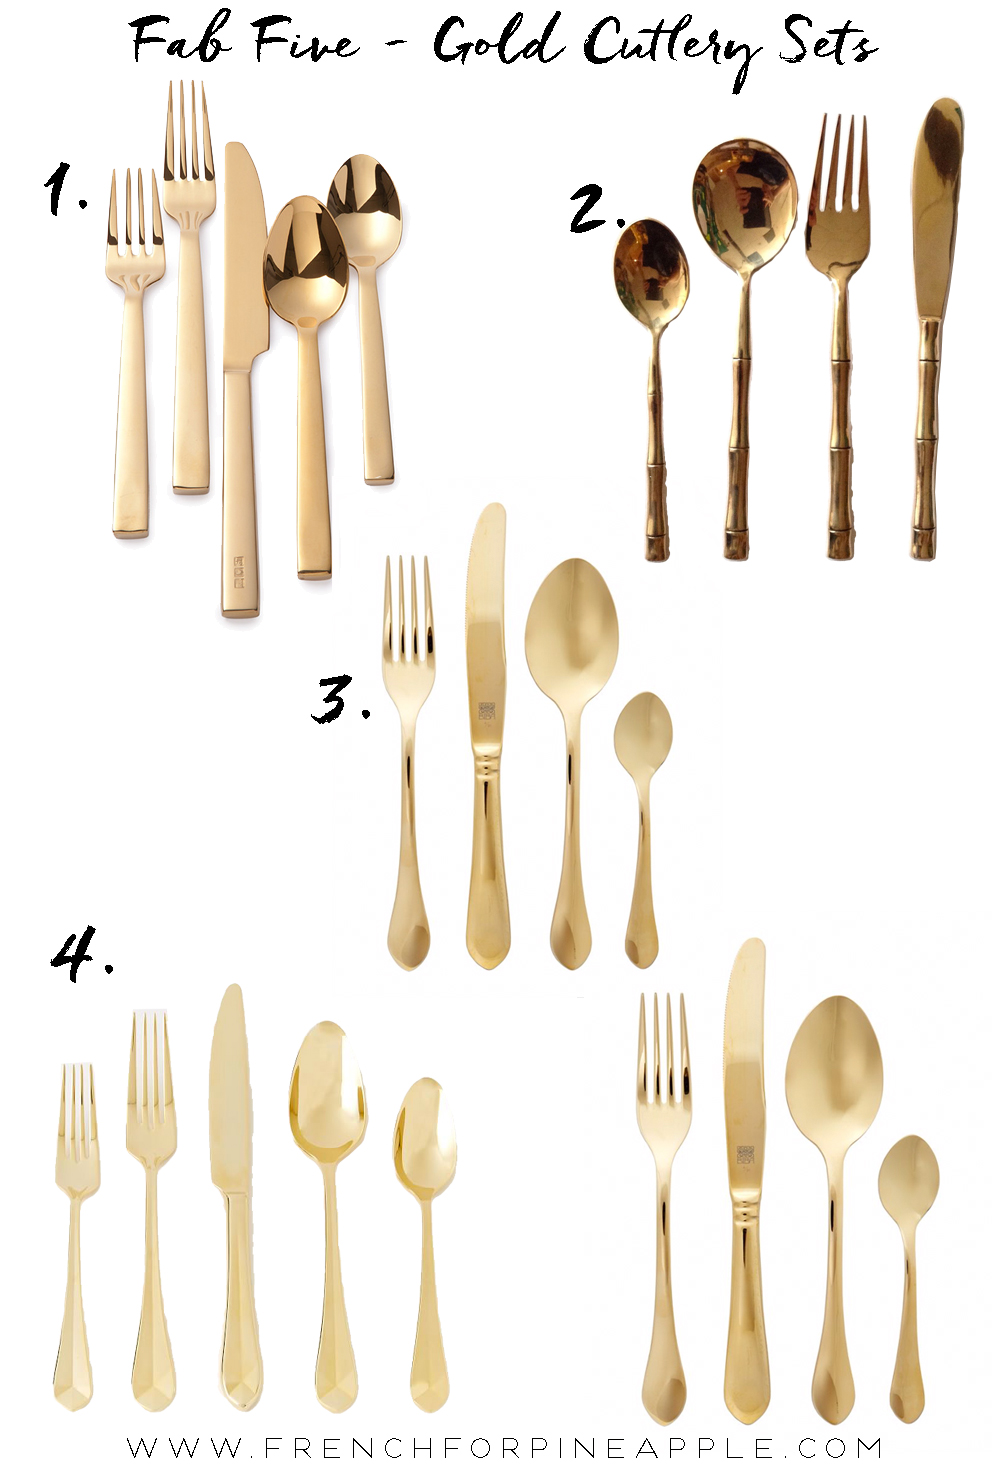 Gold Cutlery Sets Fab Five Gold Cutlery Sets F R E N C H F O R P I N E A P P L E